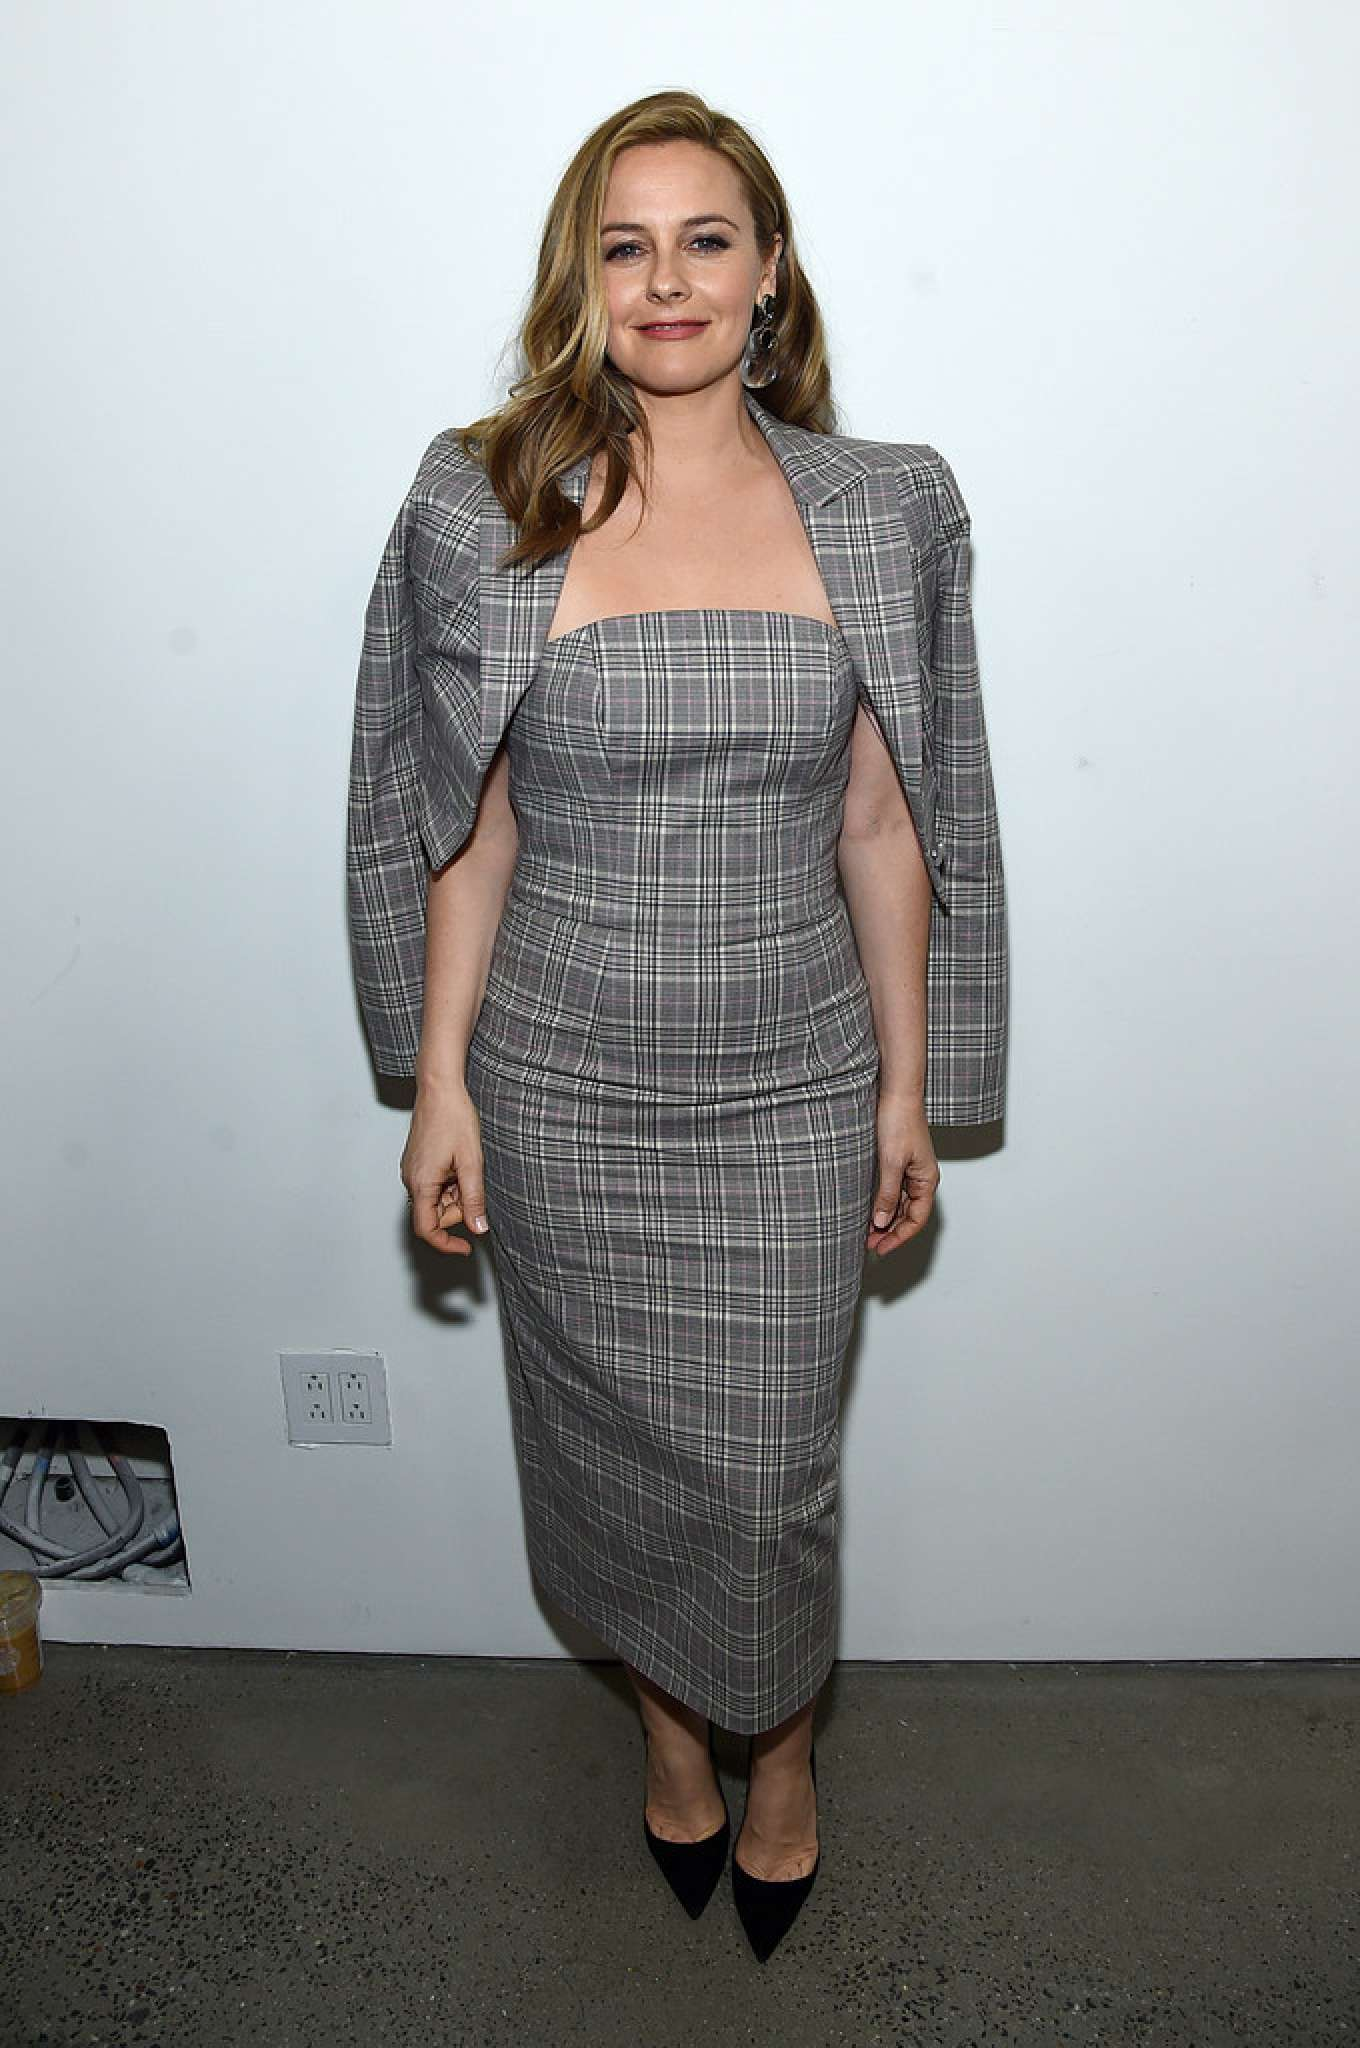 Alicia Silverstone 2020 : Alicia Silverstone – Christian Siriano Show at New York Fashion Week 2020-05